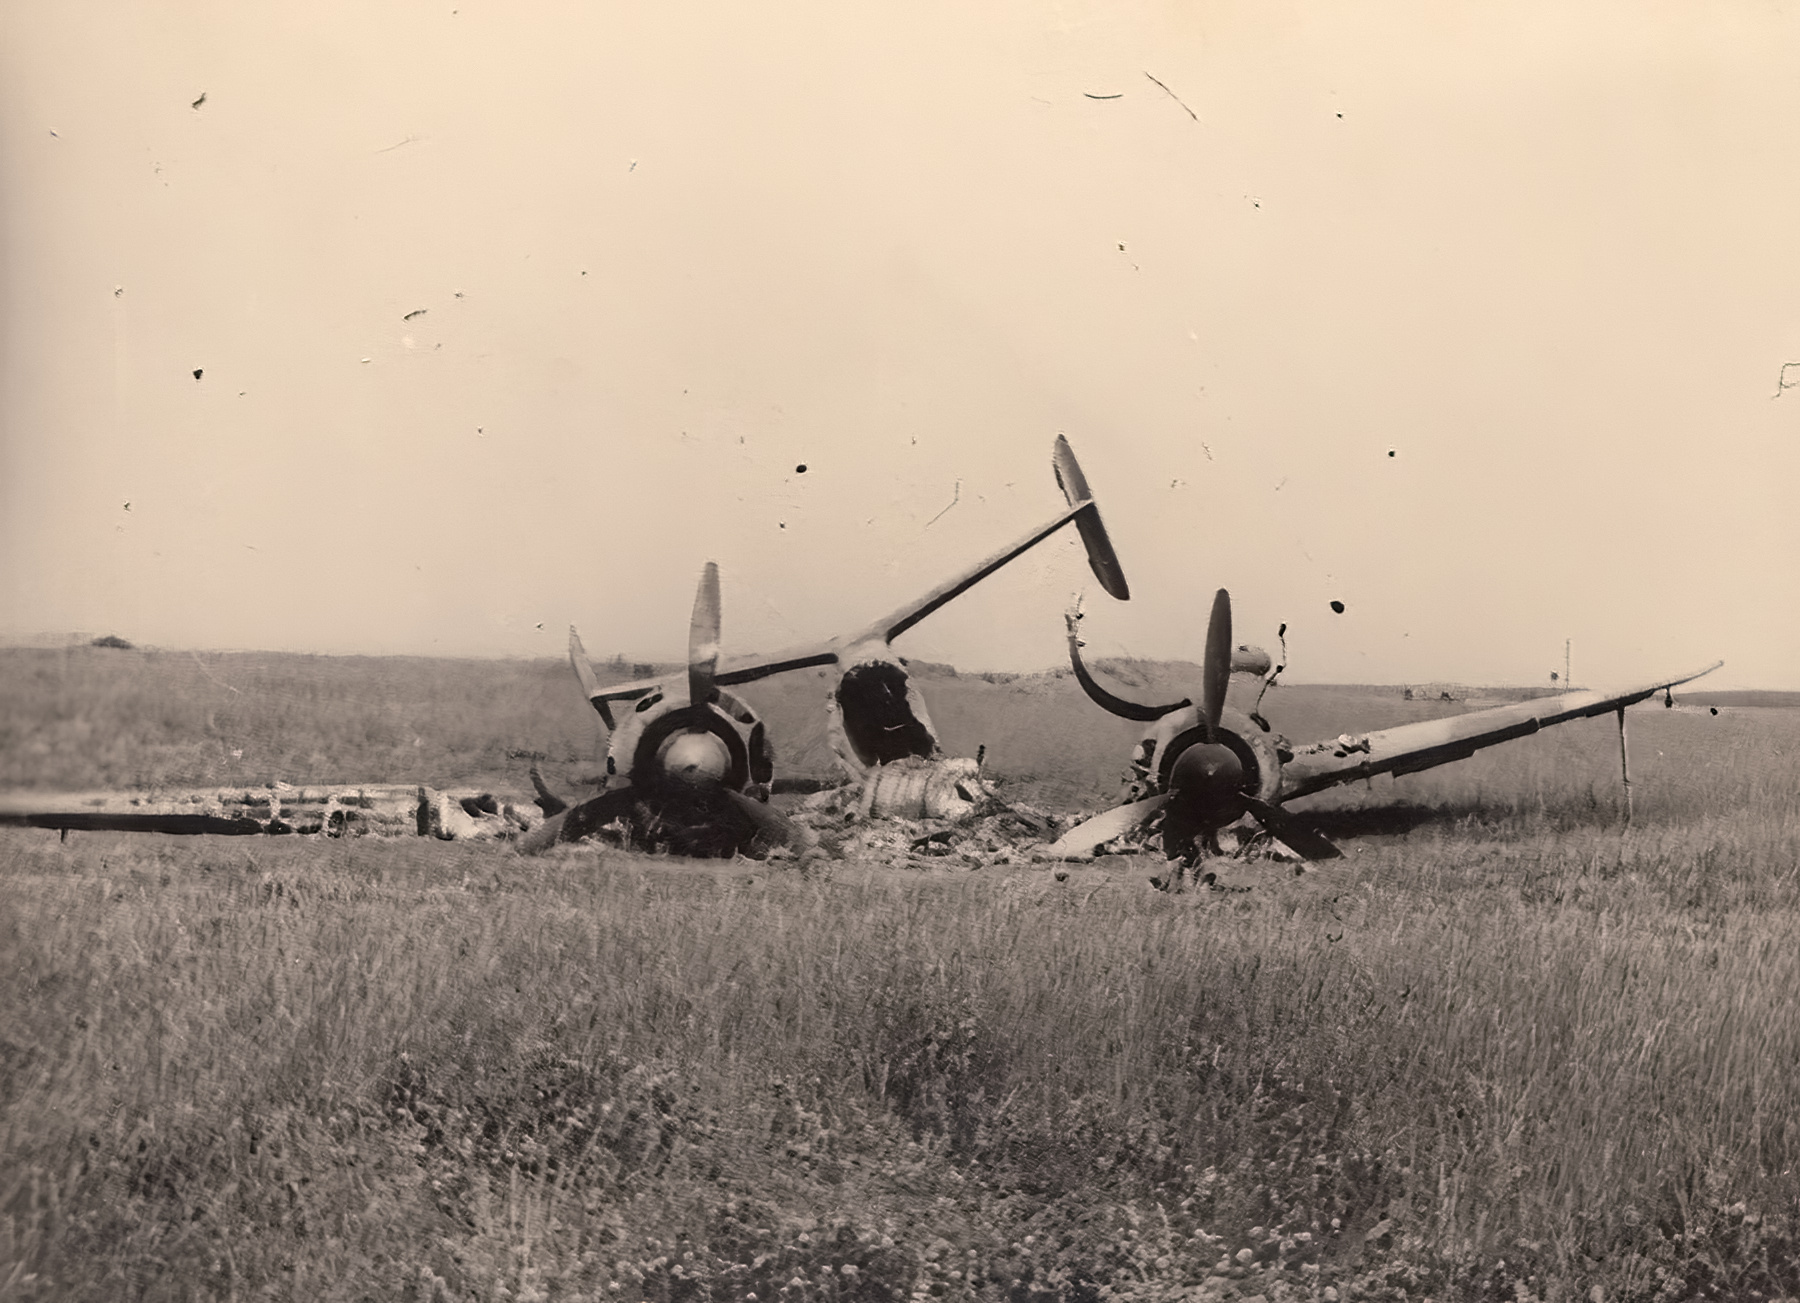 French Airforce Liore et Olivier LeO 451 destroyed whilst on the ground battle of France May Jun 1940 ebay 01